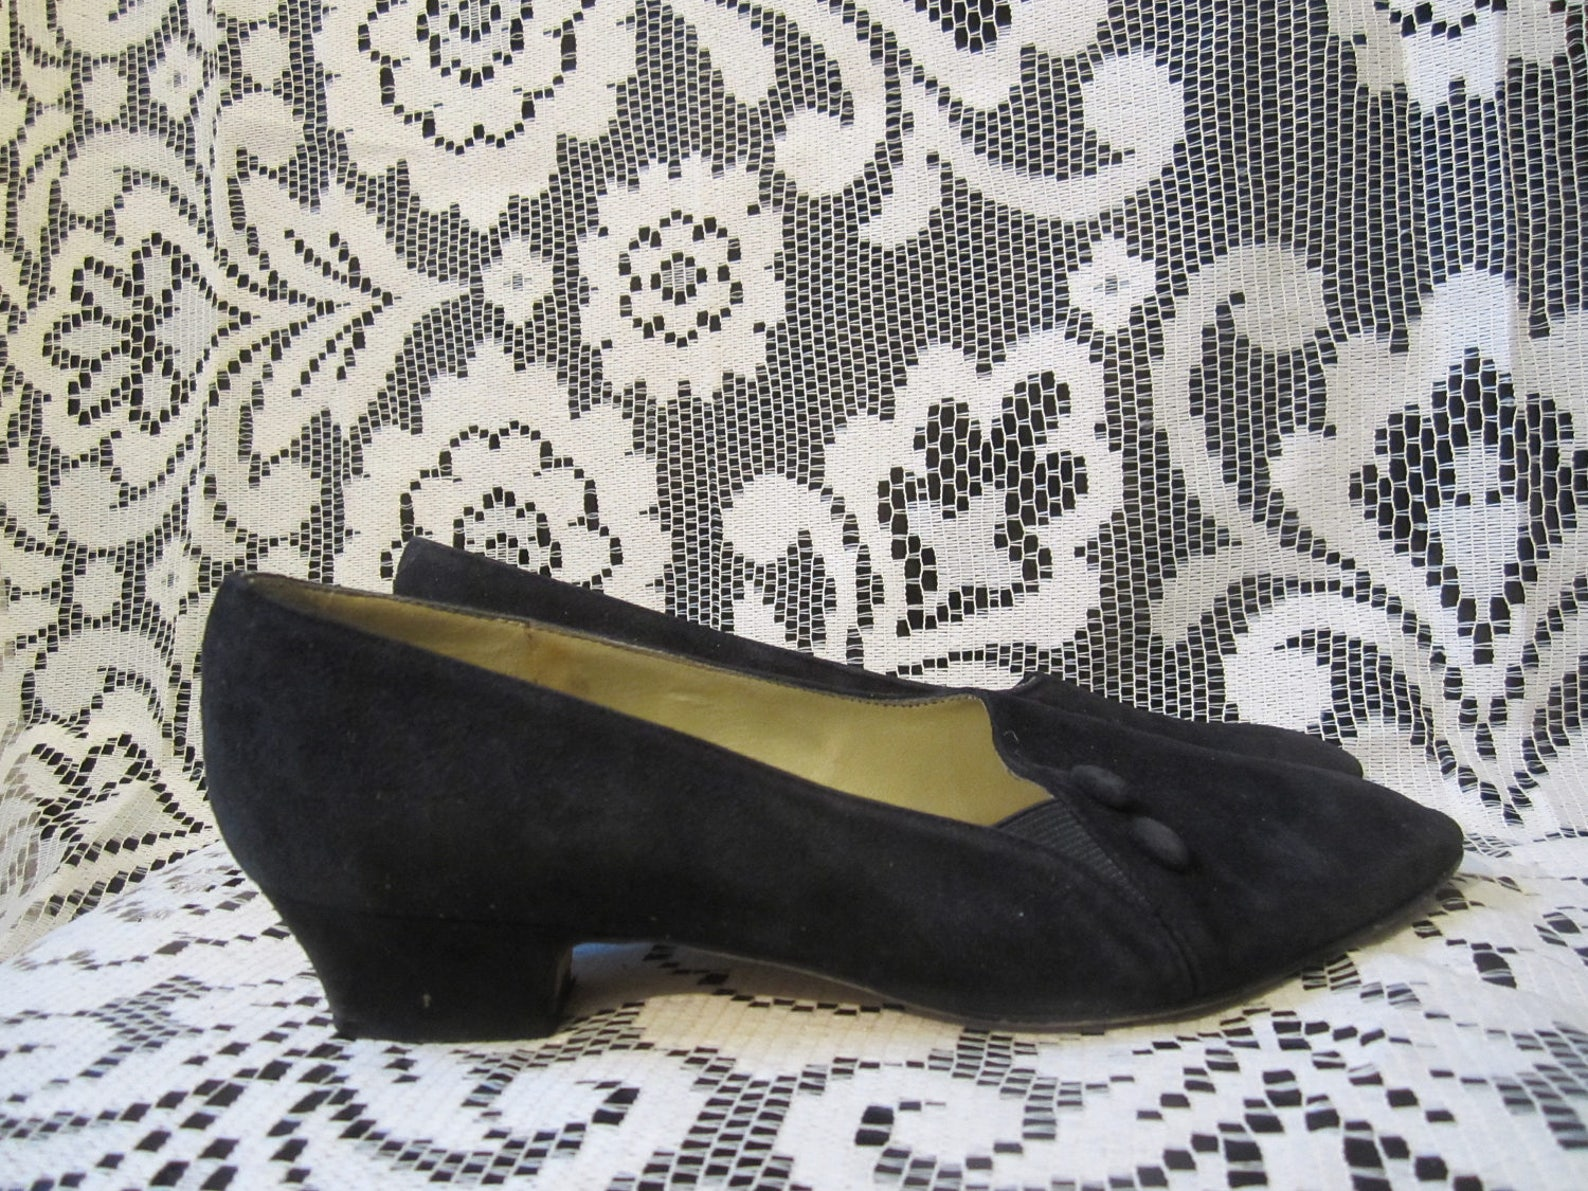 pointy black ballet flats kitten low heel suede side button 80s goth punk strega witchy pointed shoe 90s heel victorian boho bal